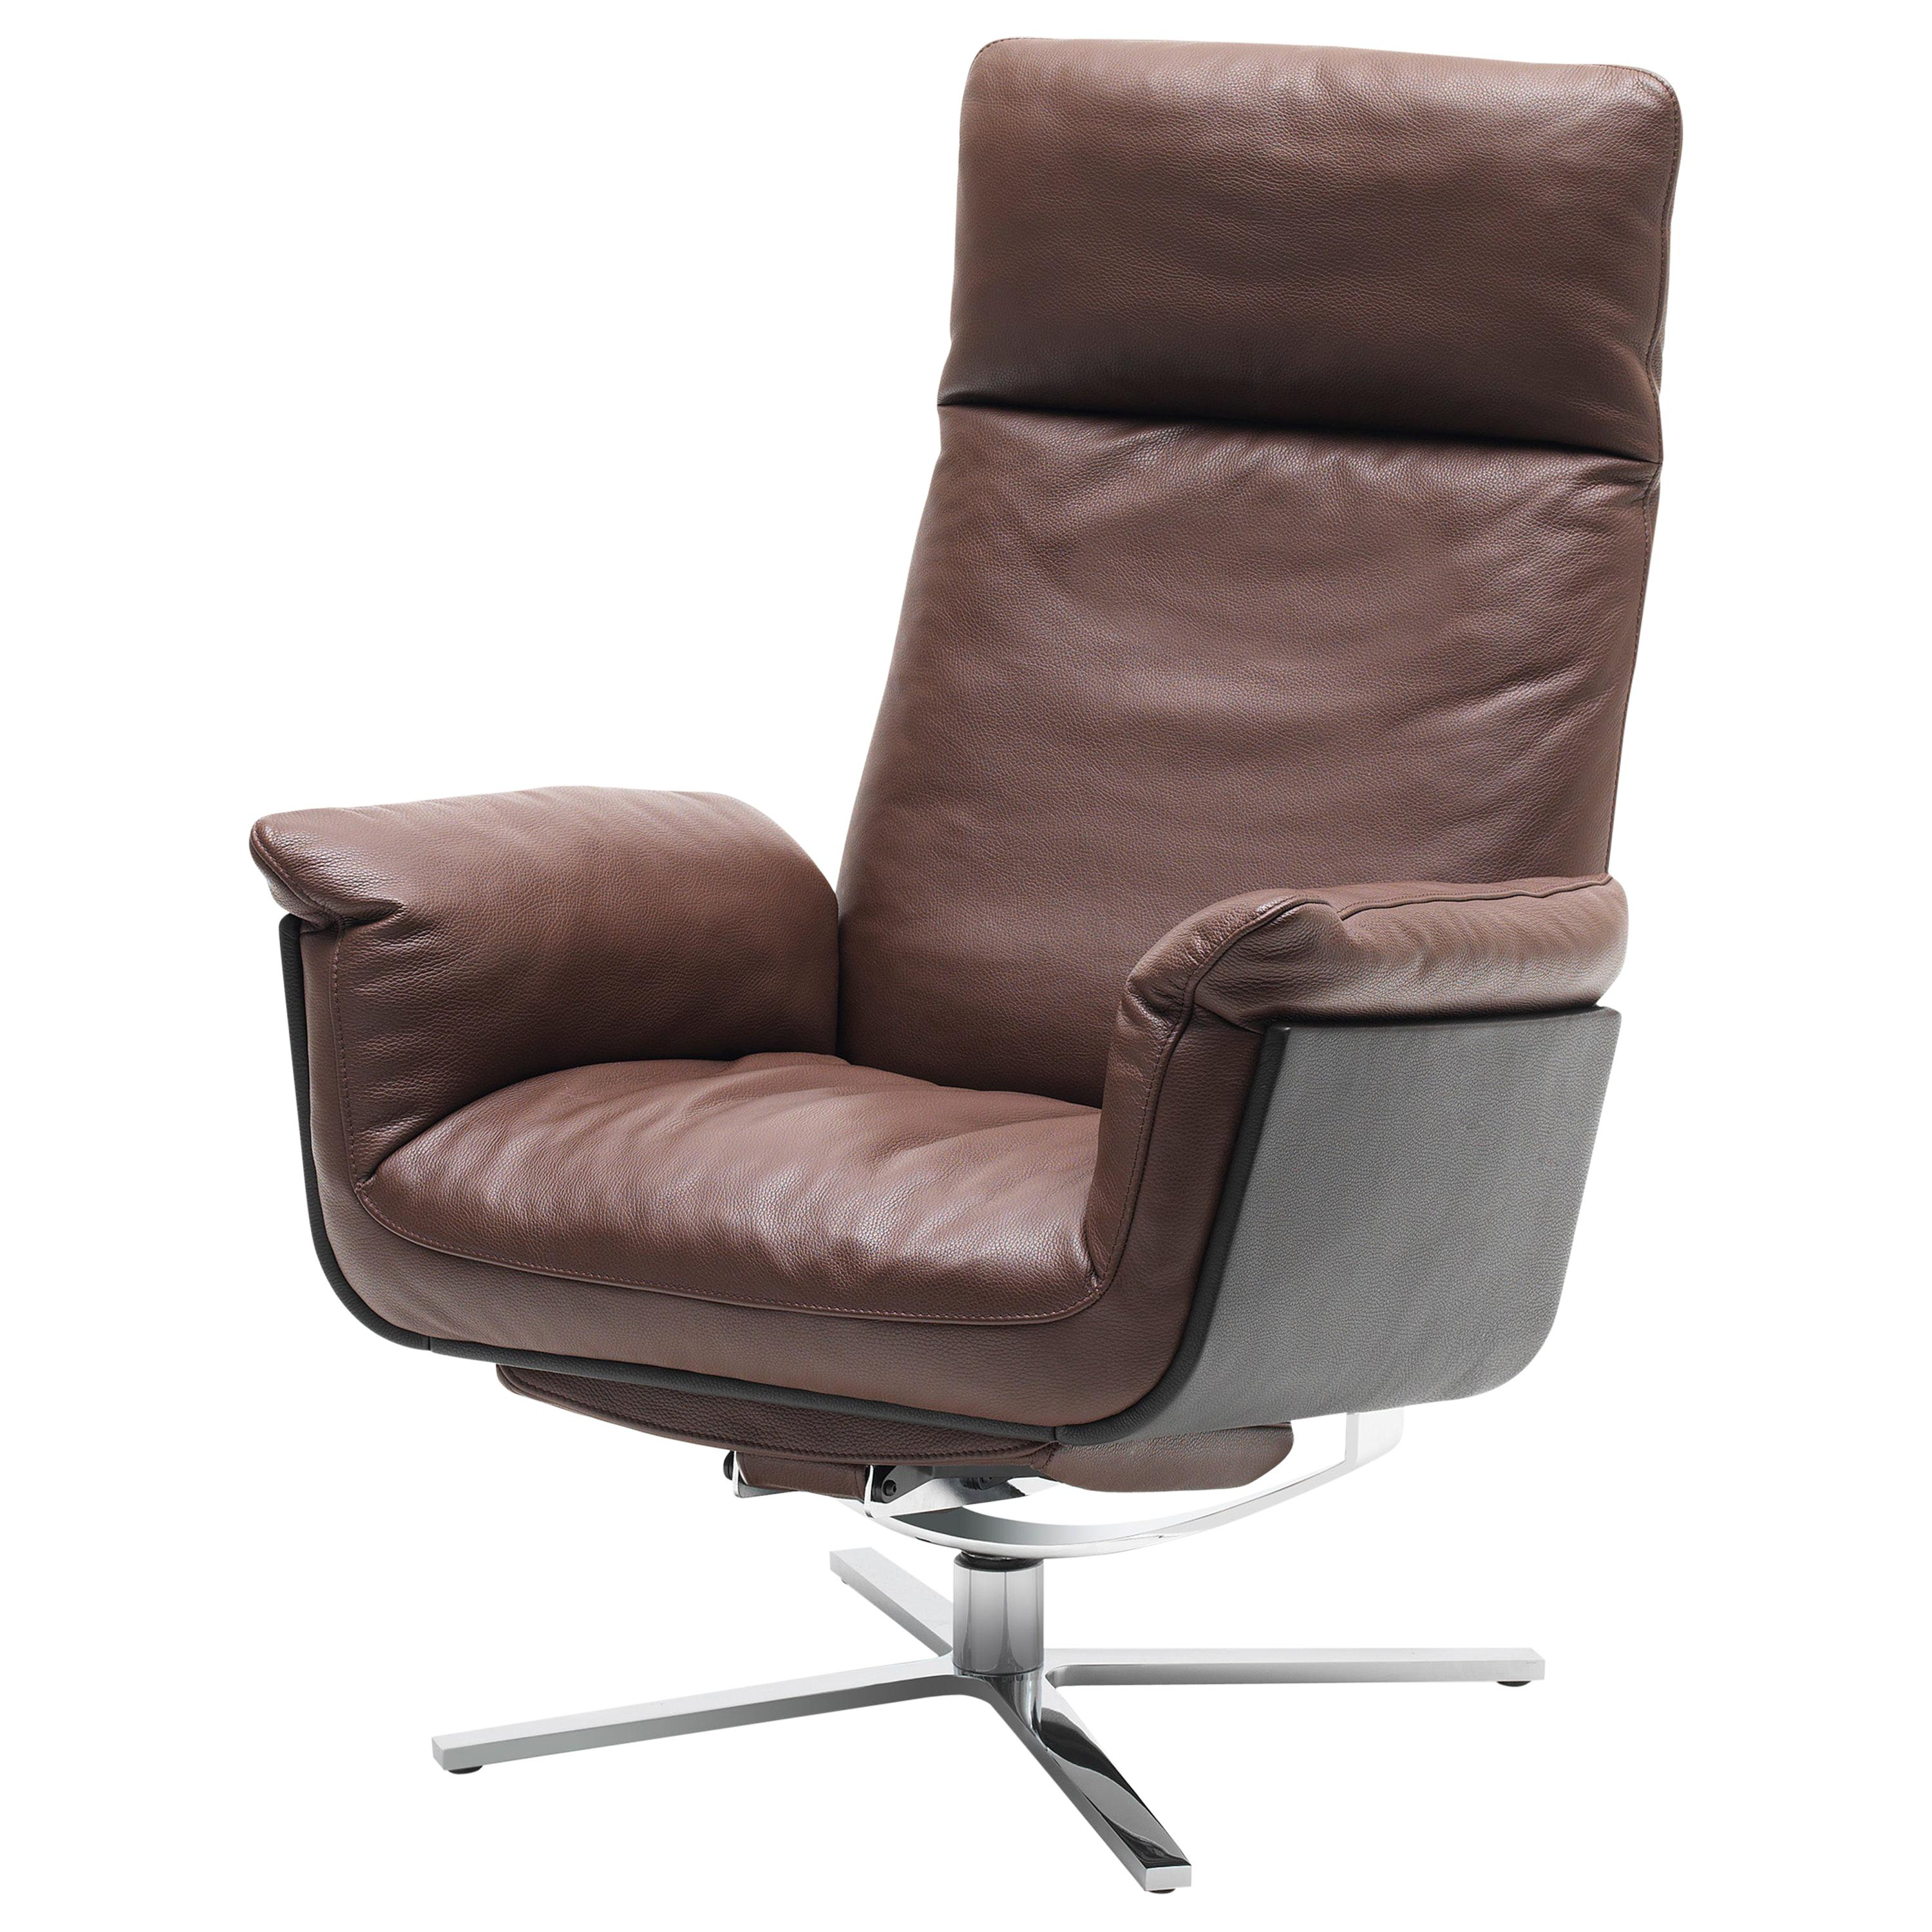 Shelby Adjustable Swivel Leather Armchair by FSM